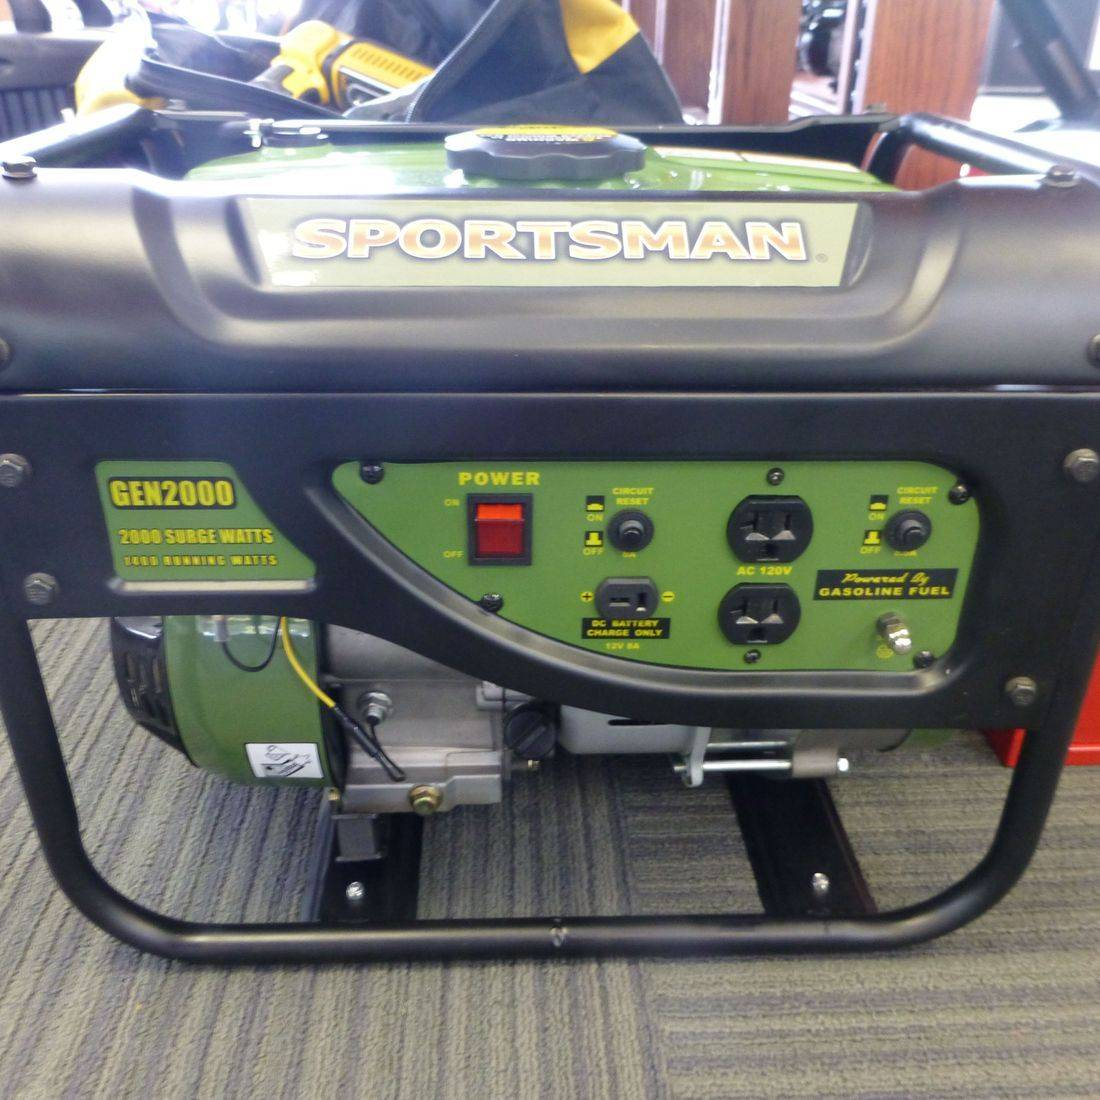 Black and Green Sportsman Generator Sitting On a Blue Carpeted Floor